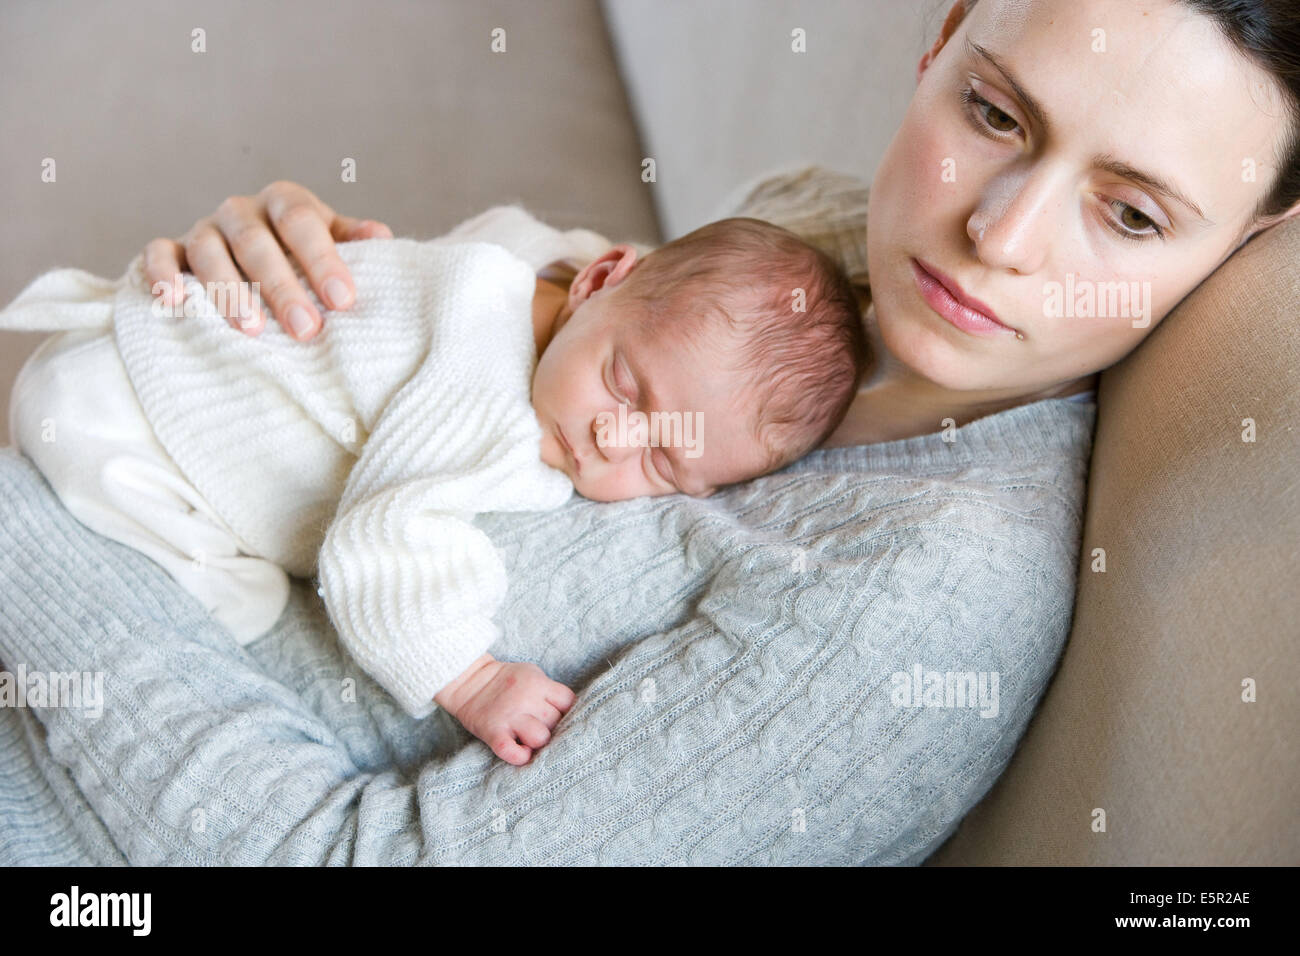 3 week old baby with his mother. - Stock Image